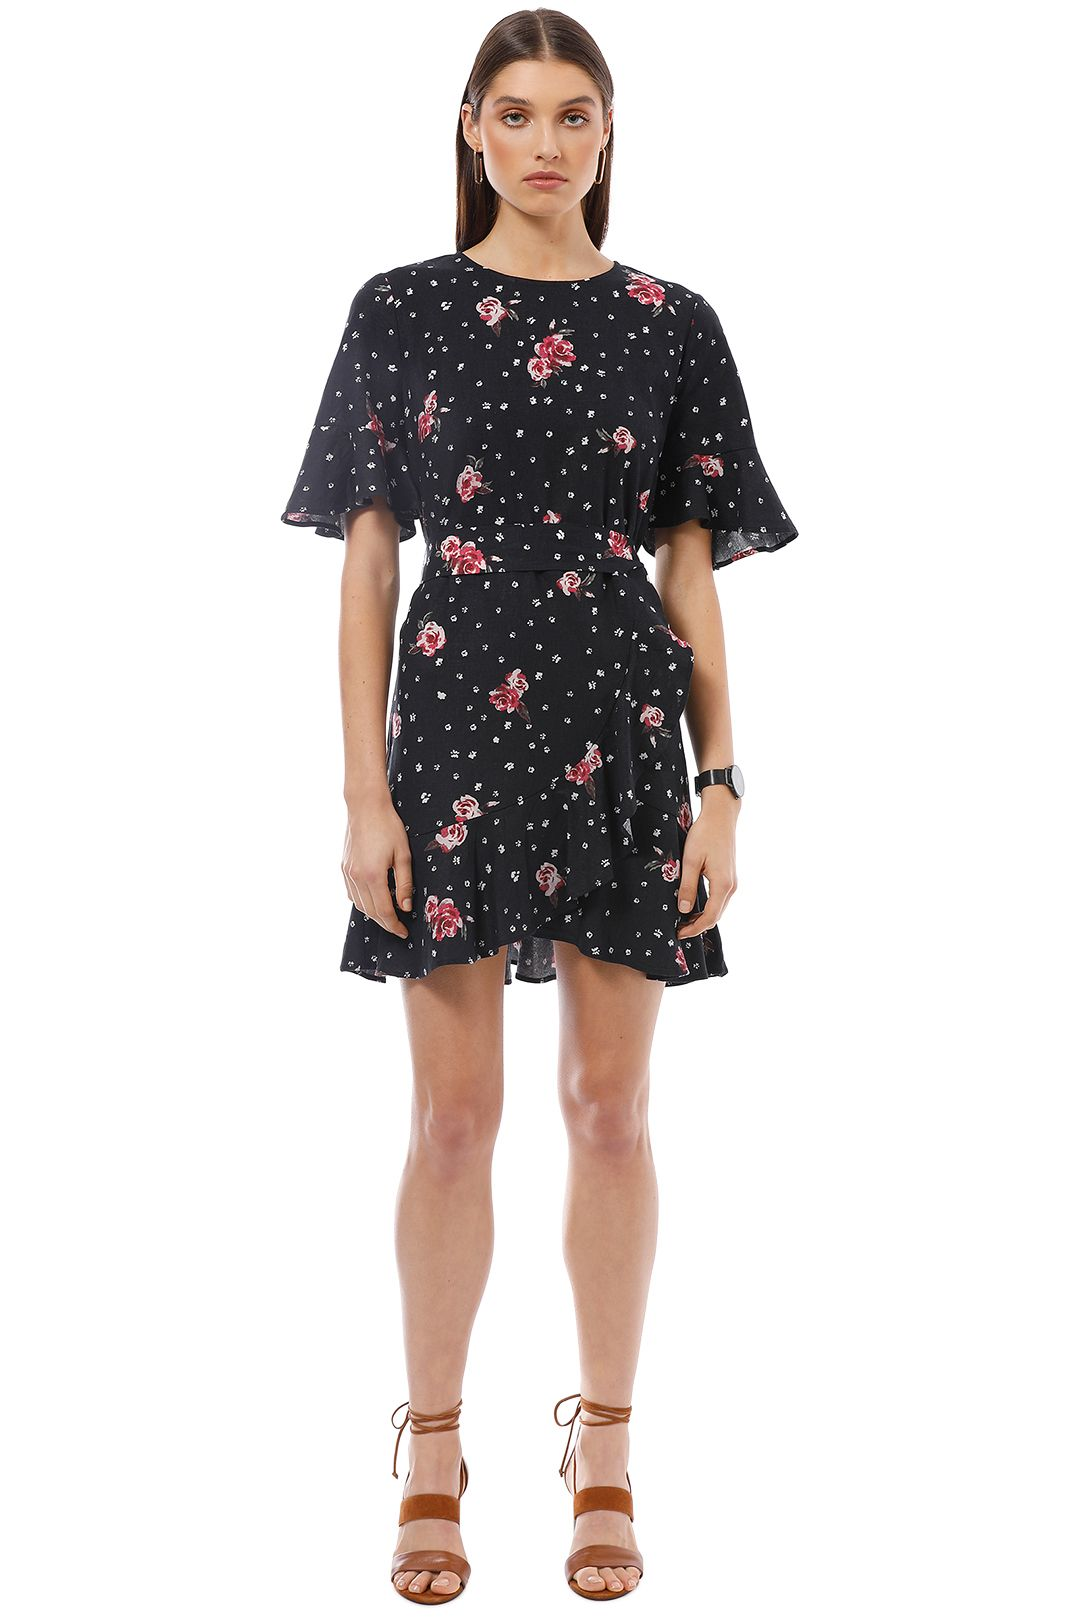 Rodeo Show - Midnight Dress - Black Floral - Front